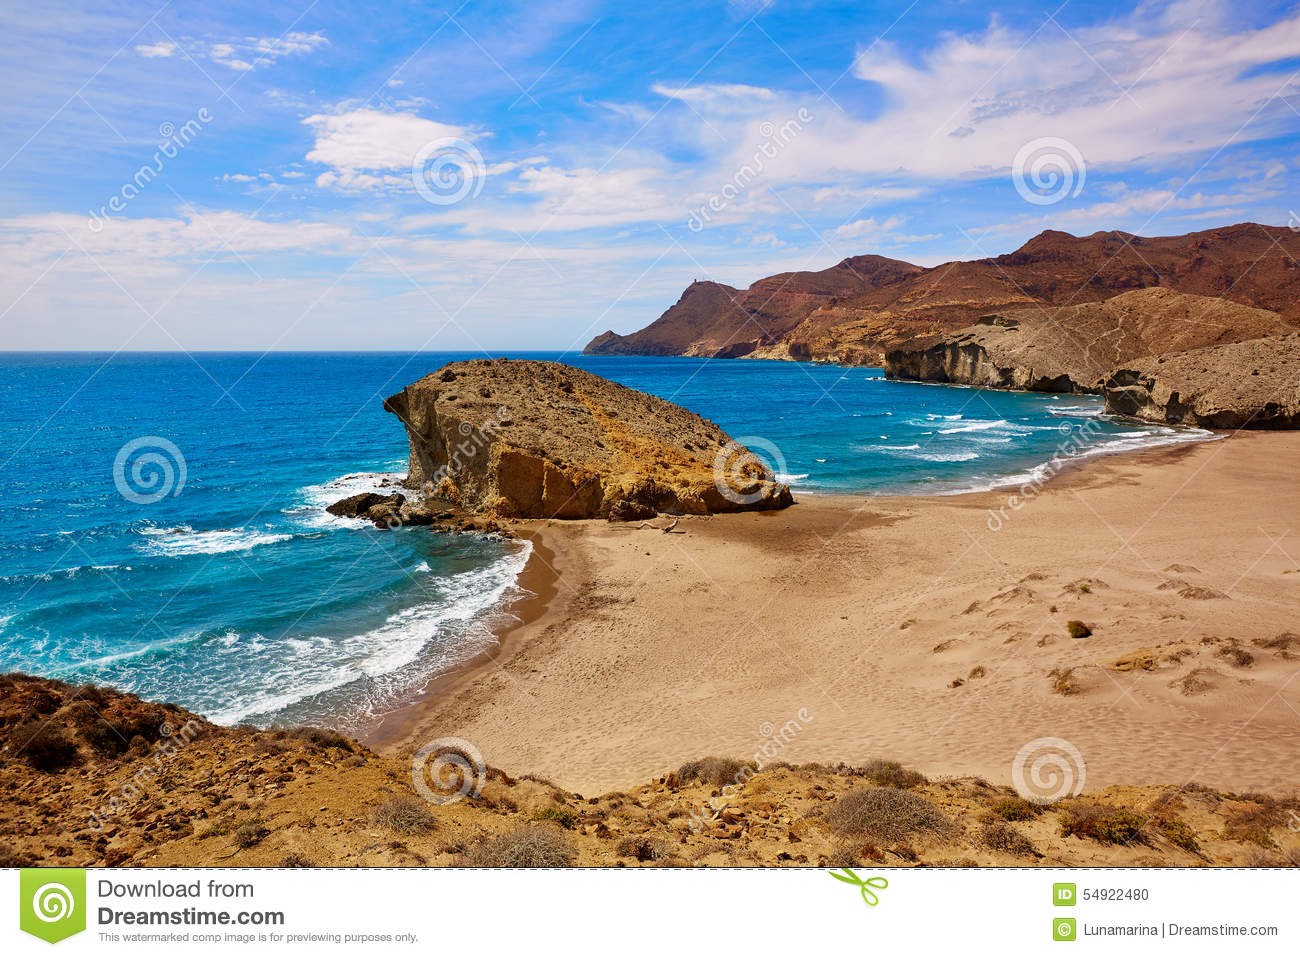 Almeria Playa Del Monsul Beach At Cabo De Gata Stock Photo.